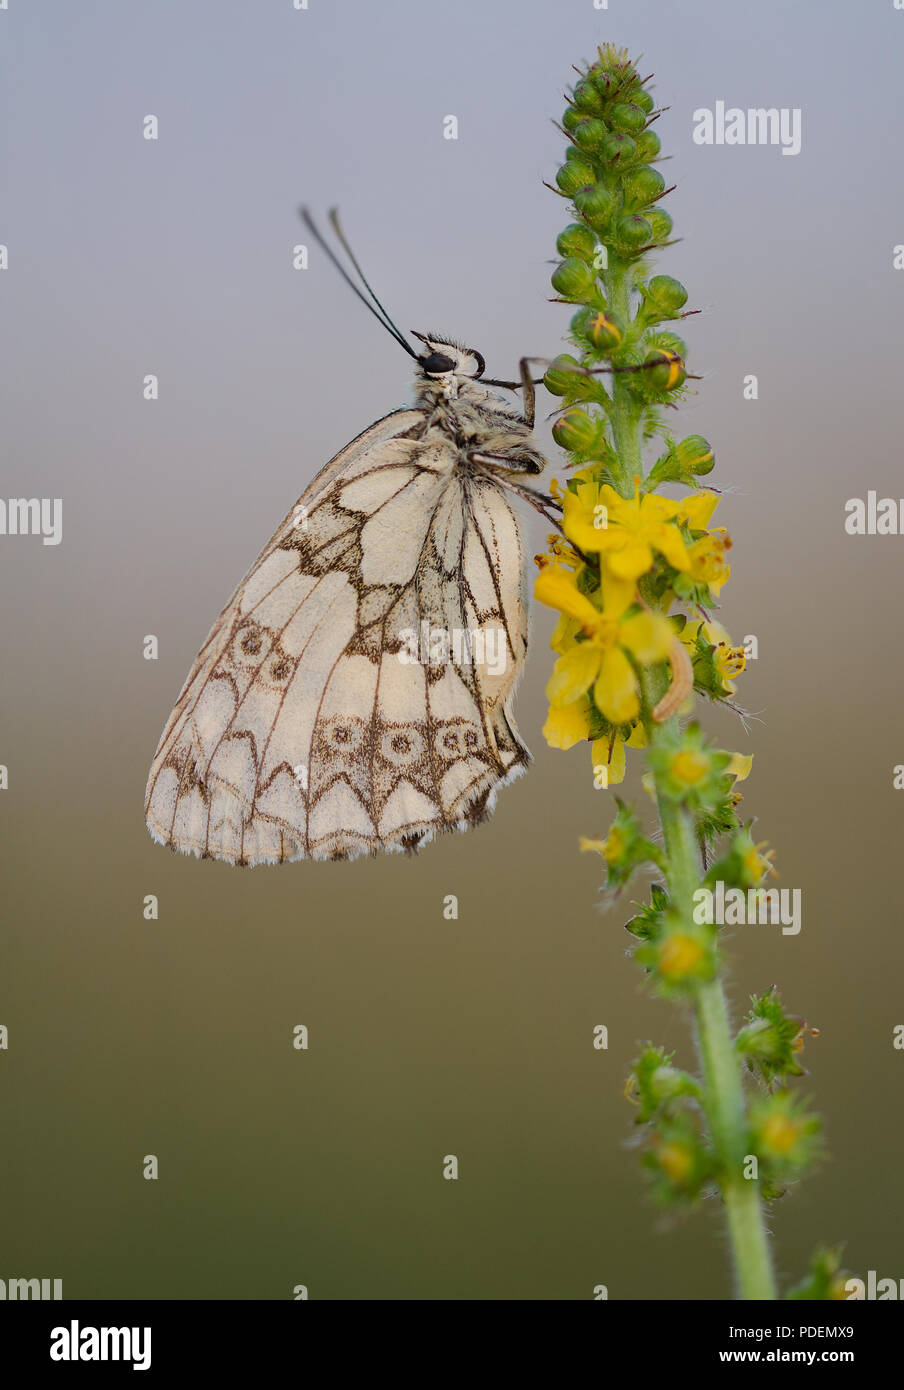 Roosting Marbled White Butterfly - Stock Image